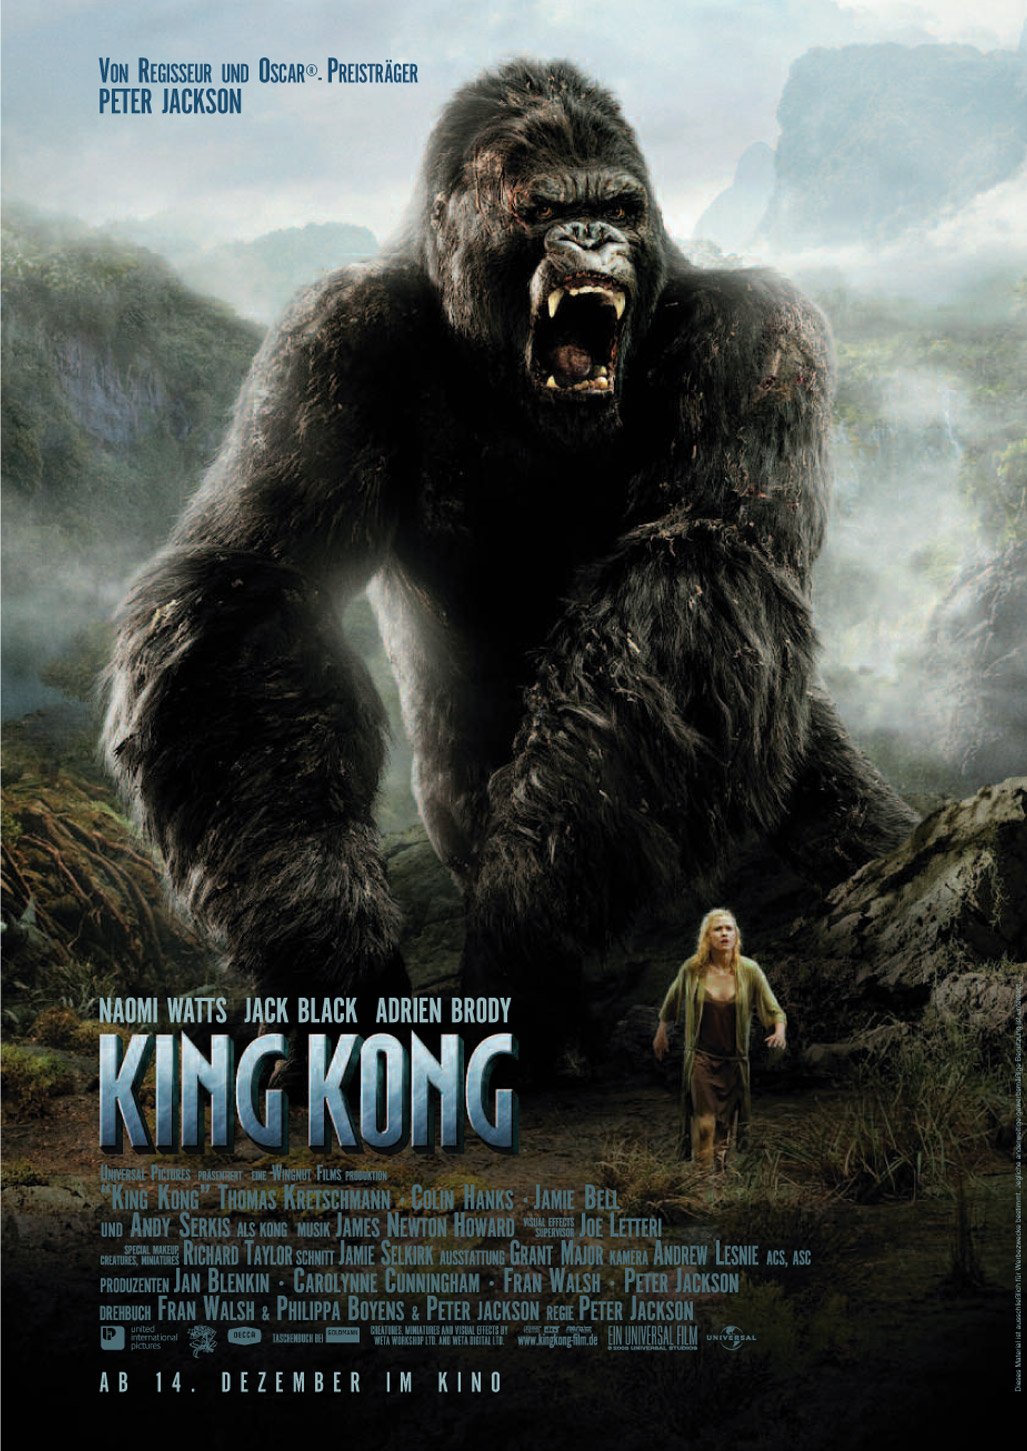 King Kong en el fancine